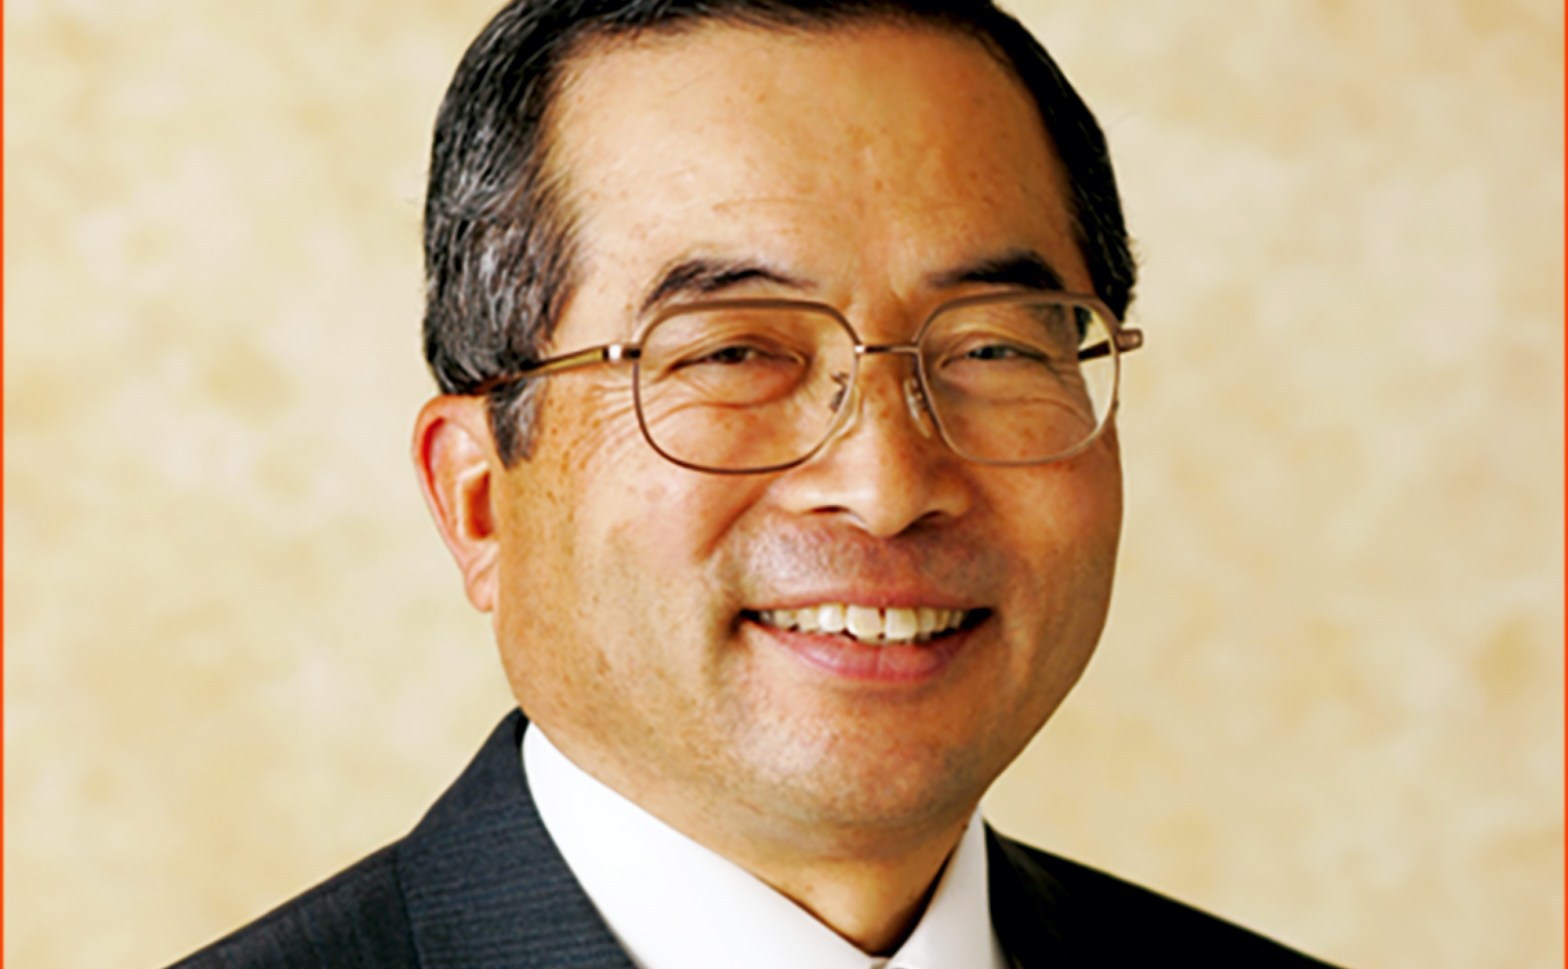 eMobile – interview with CEO and founder Dr Sachio Semmoto by Dr. Gerhard Fasol